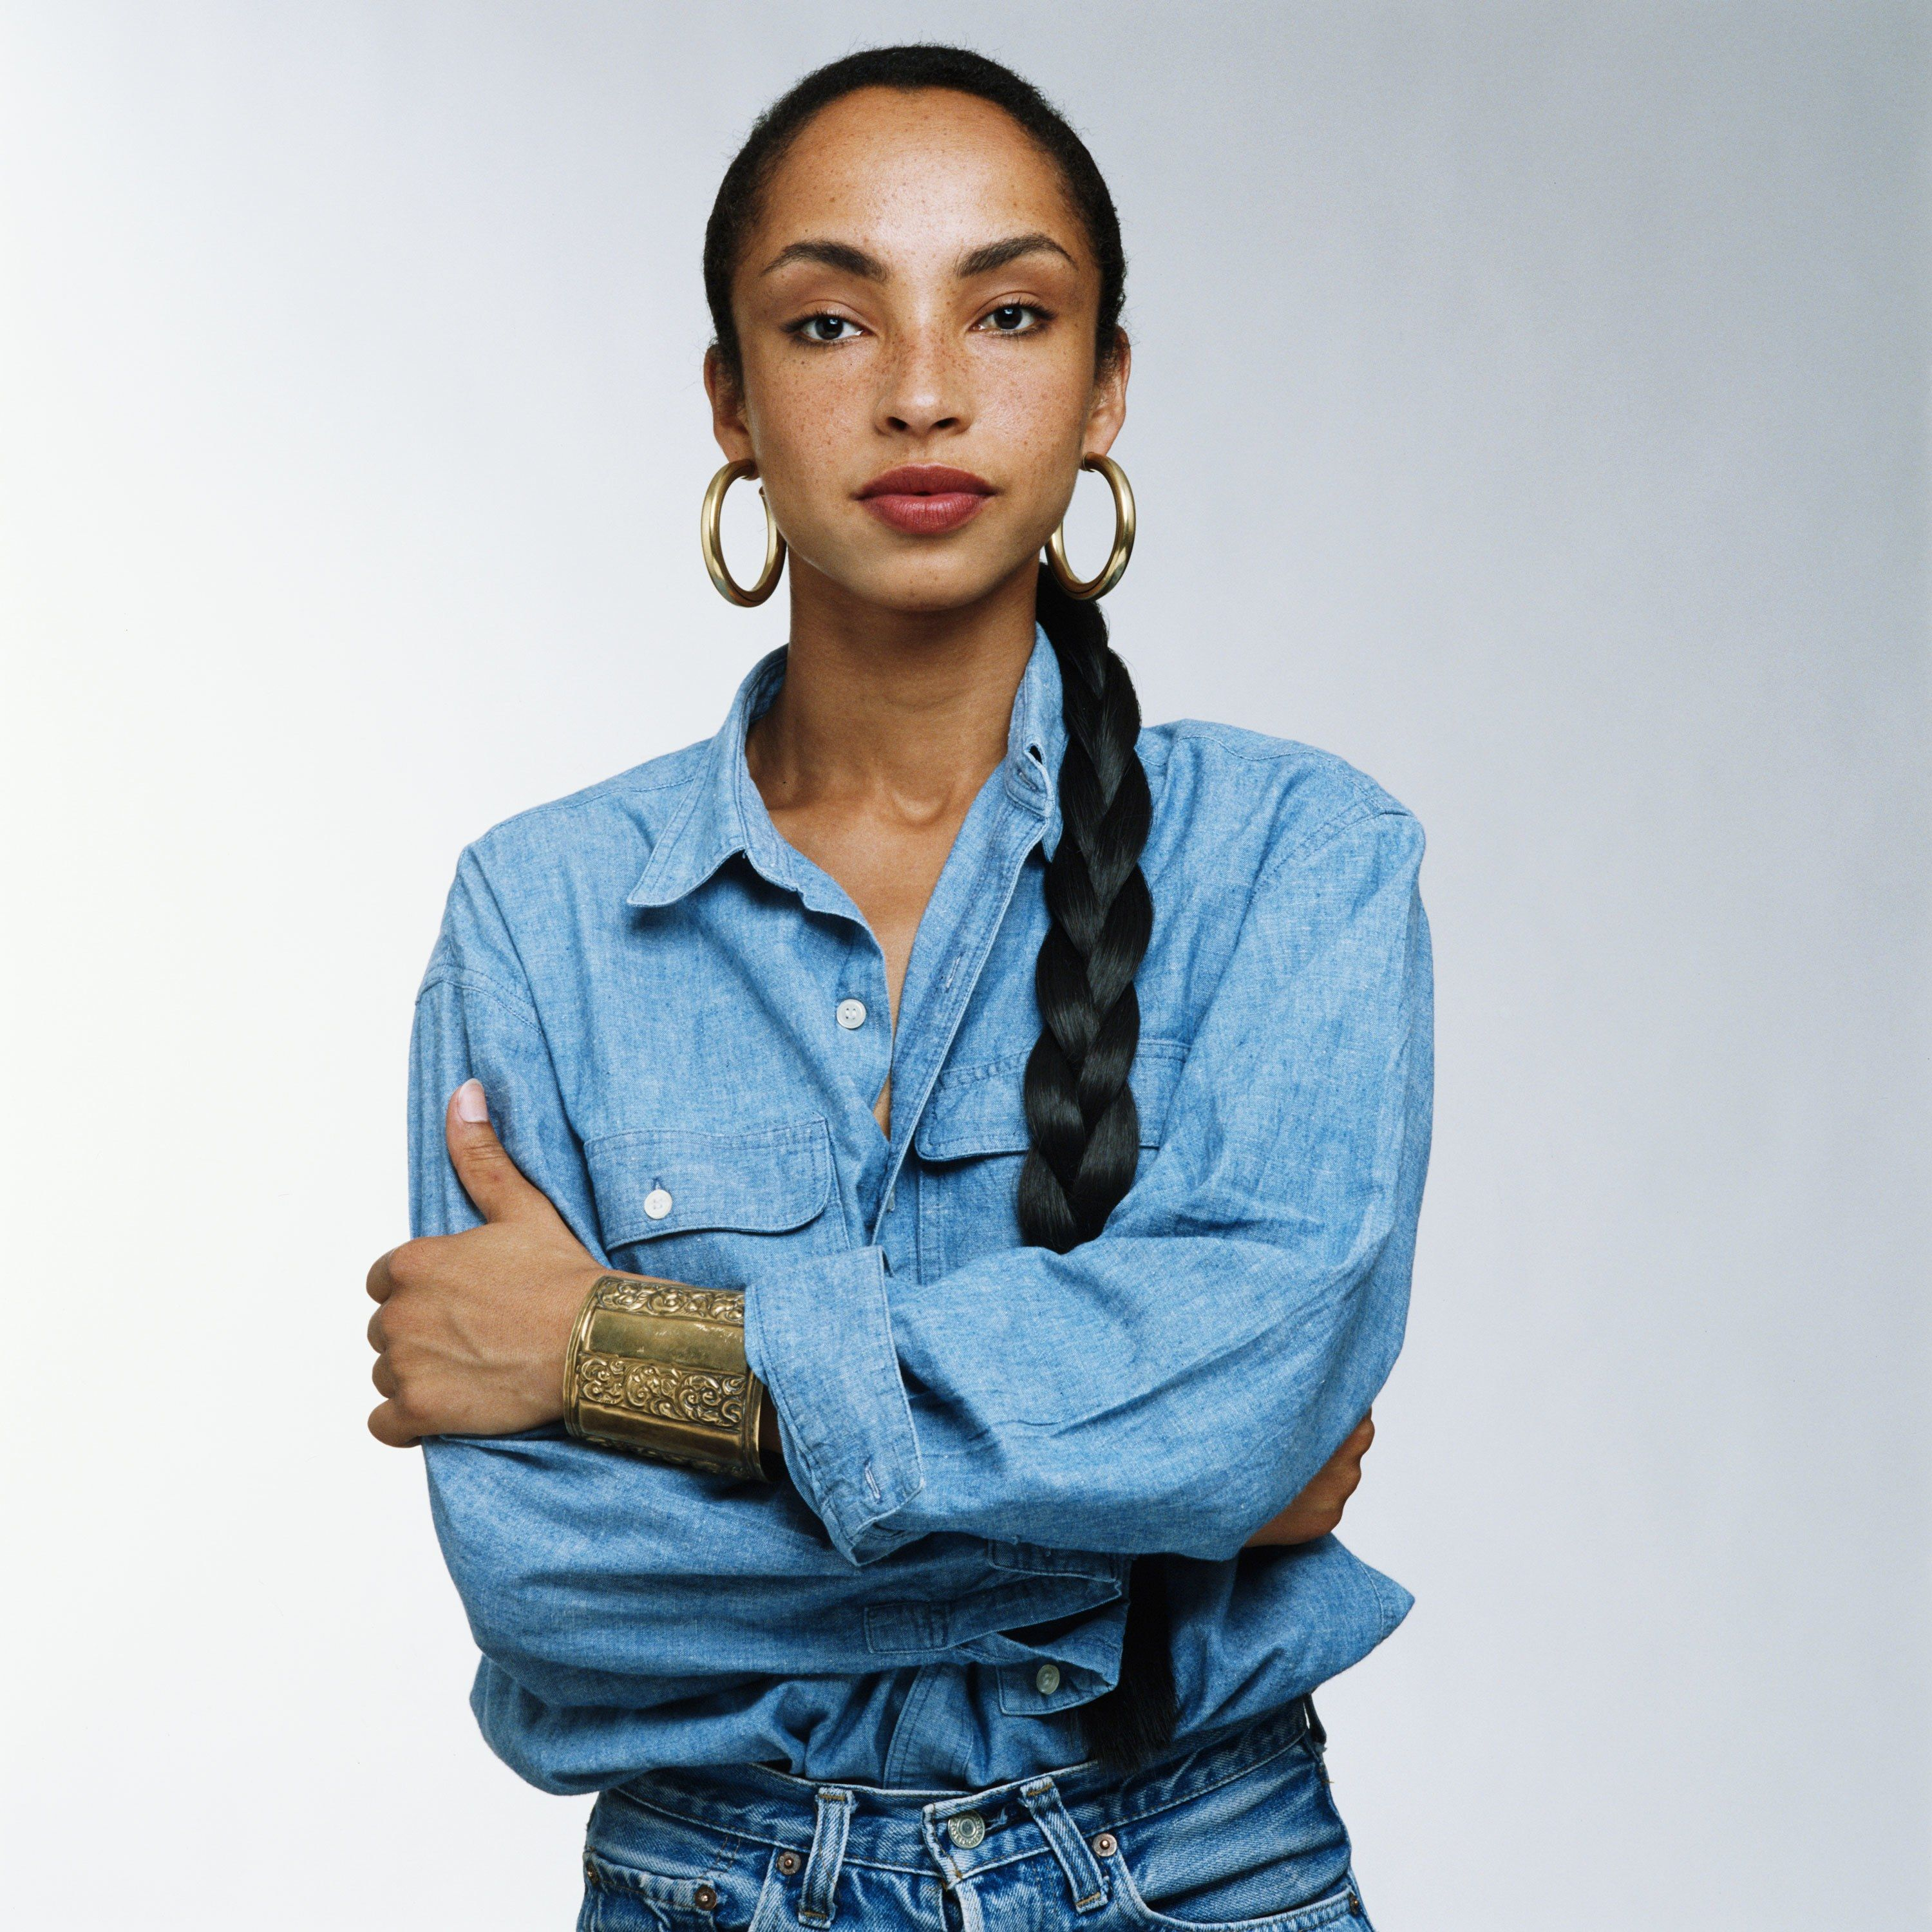 No Wonder Drake Tattooed a Picture of Sade on His Torso—She's a Style Legend